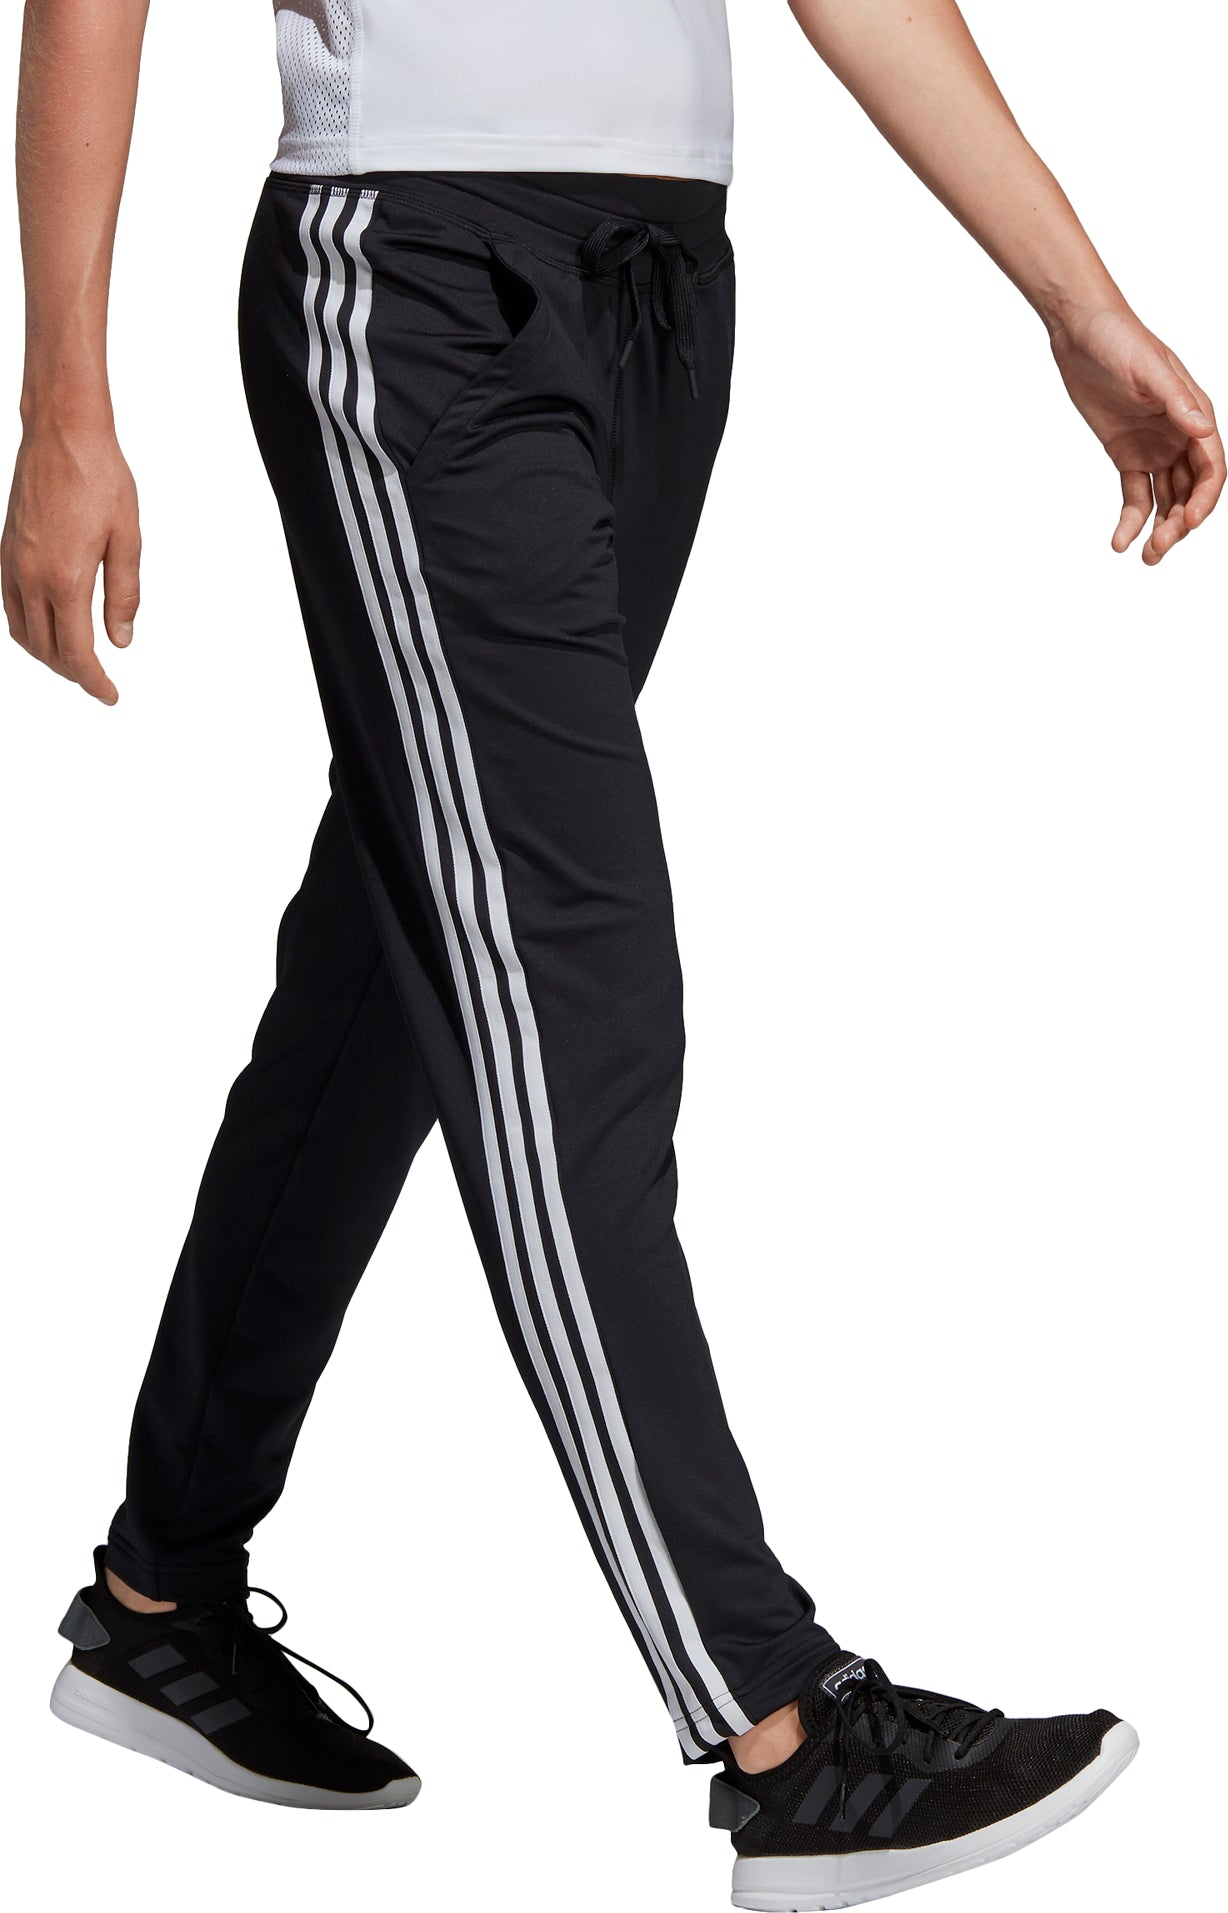 Adidas D2M Straight Fitted Knit 3 Stripes Long Pant Women's